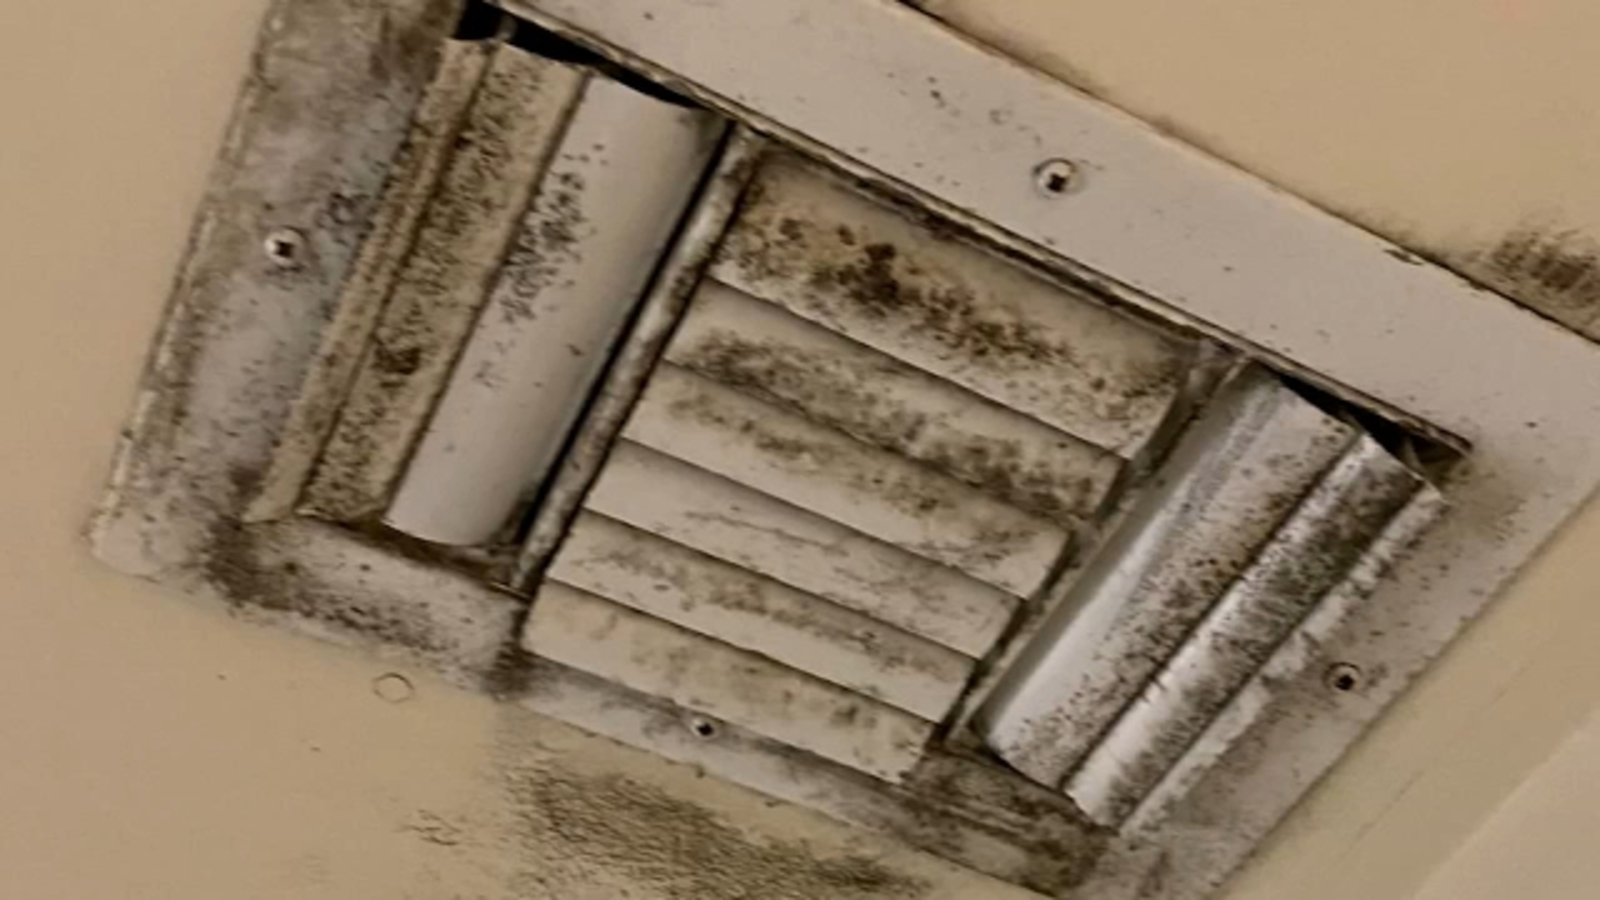 Fort Bragg soldier returned from Afghanistan to find barracks covered in mold, father says